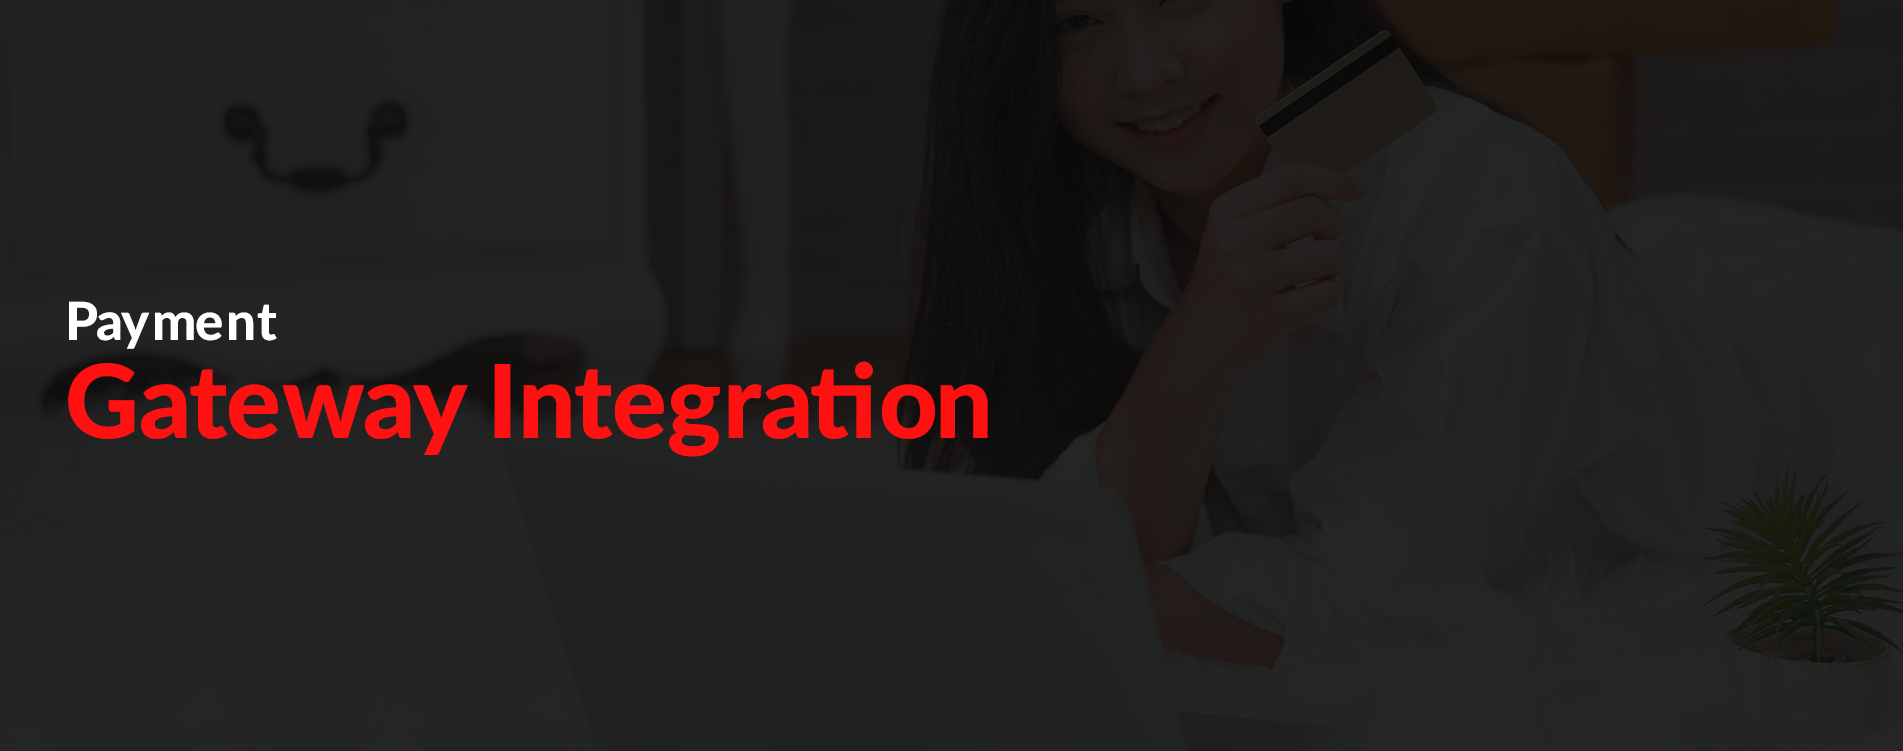 chicago payment gateway integration for web applications